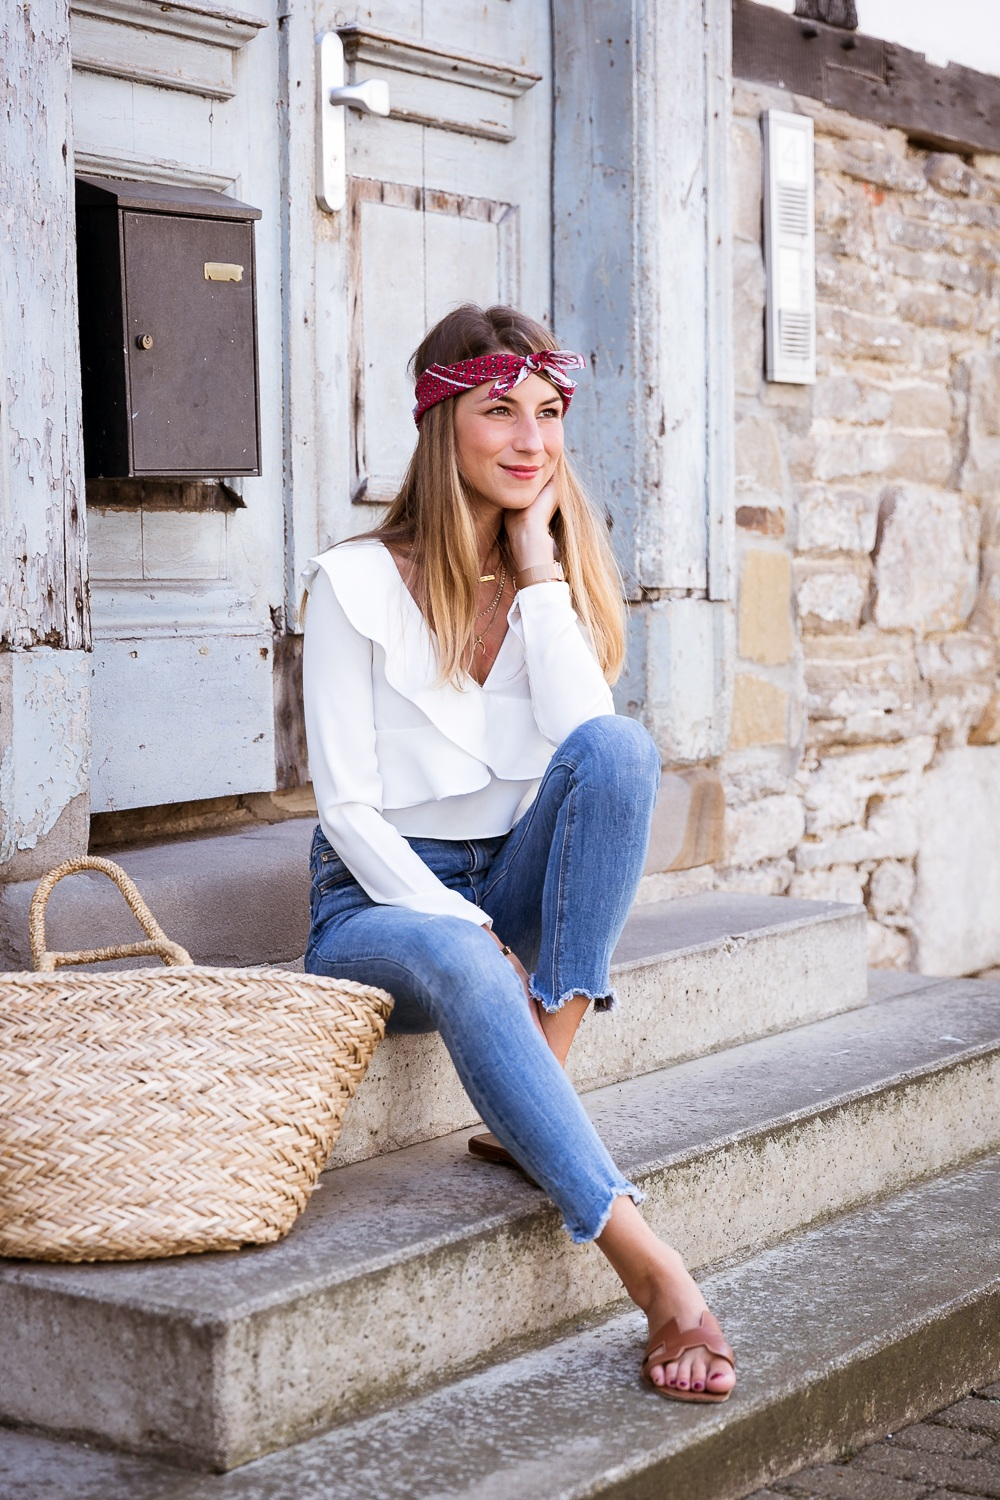 Summer is back :: Cropped Ruffle Top, Skinny Jeans & Straw Bag